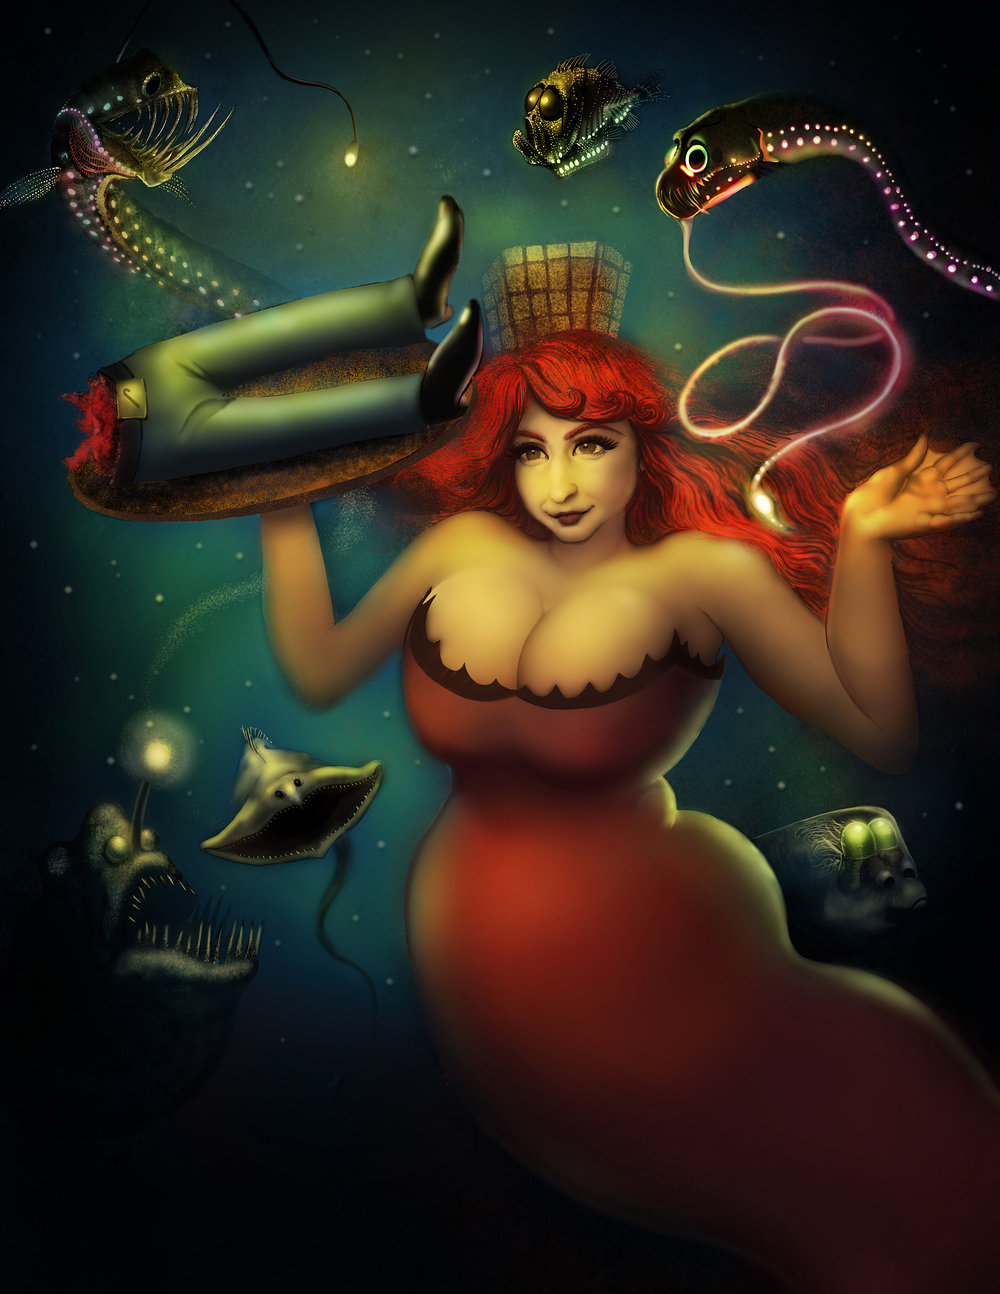 ATARGATIS–Digital painting. Illustration showing Syrian goddess and first mermaid, Atargatis.